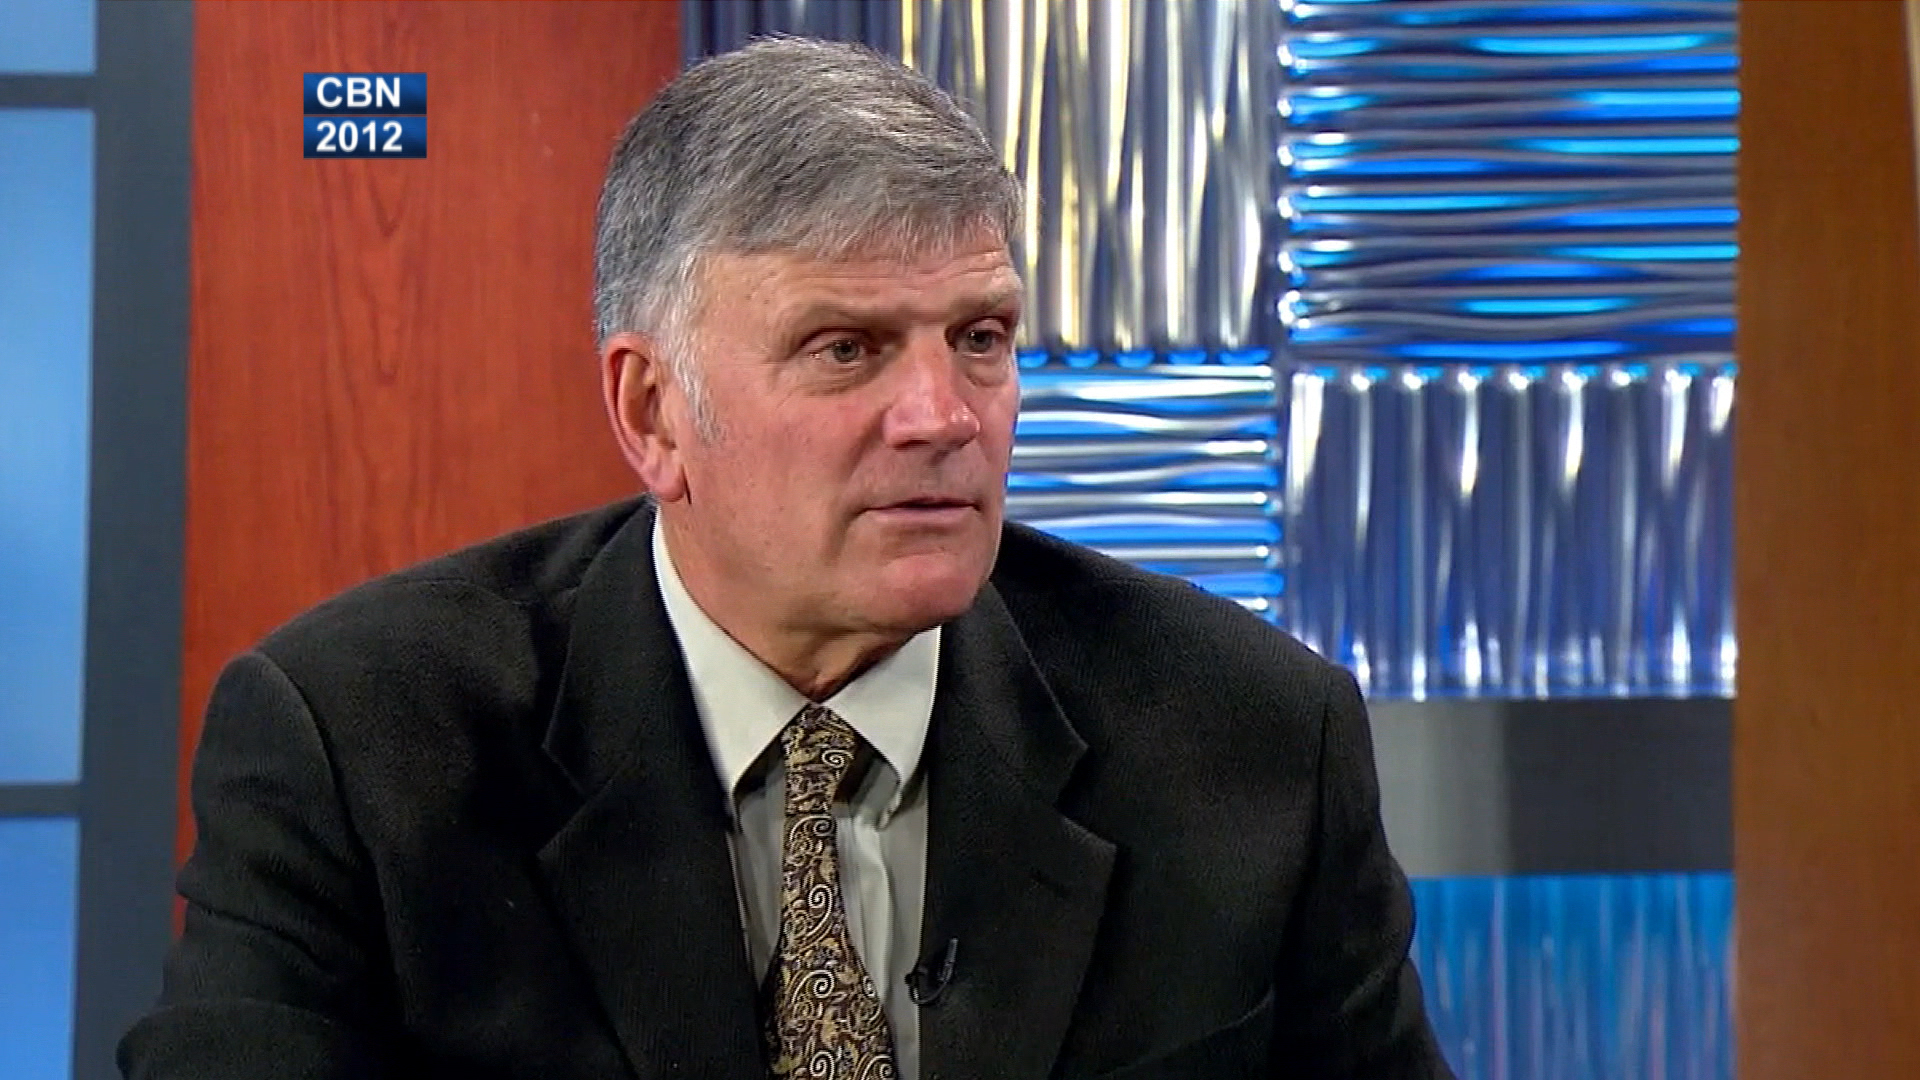 Franklin Graham puts Putin on a pedestal